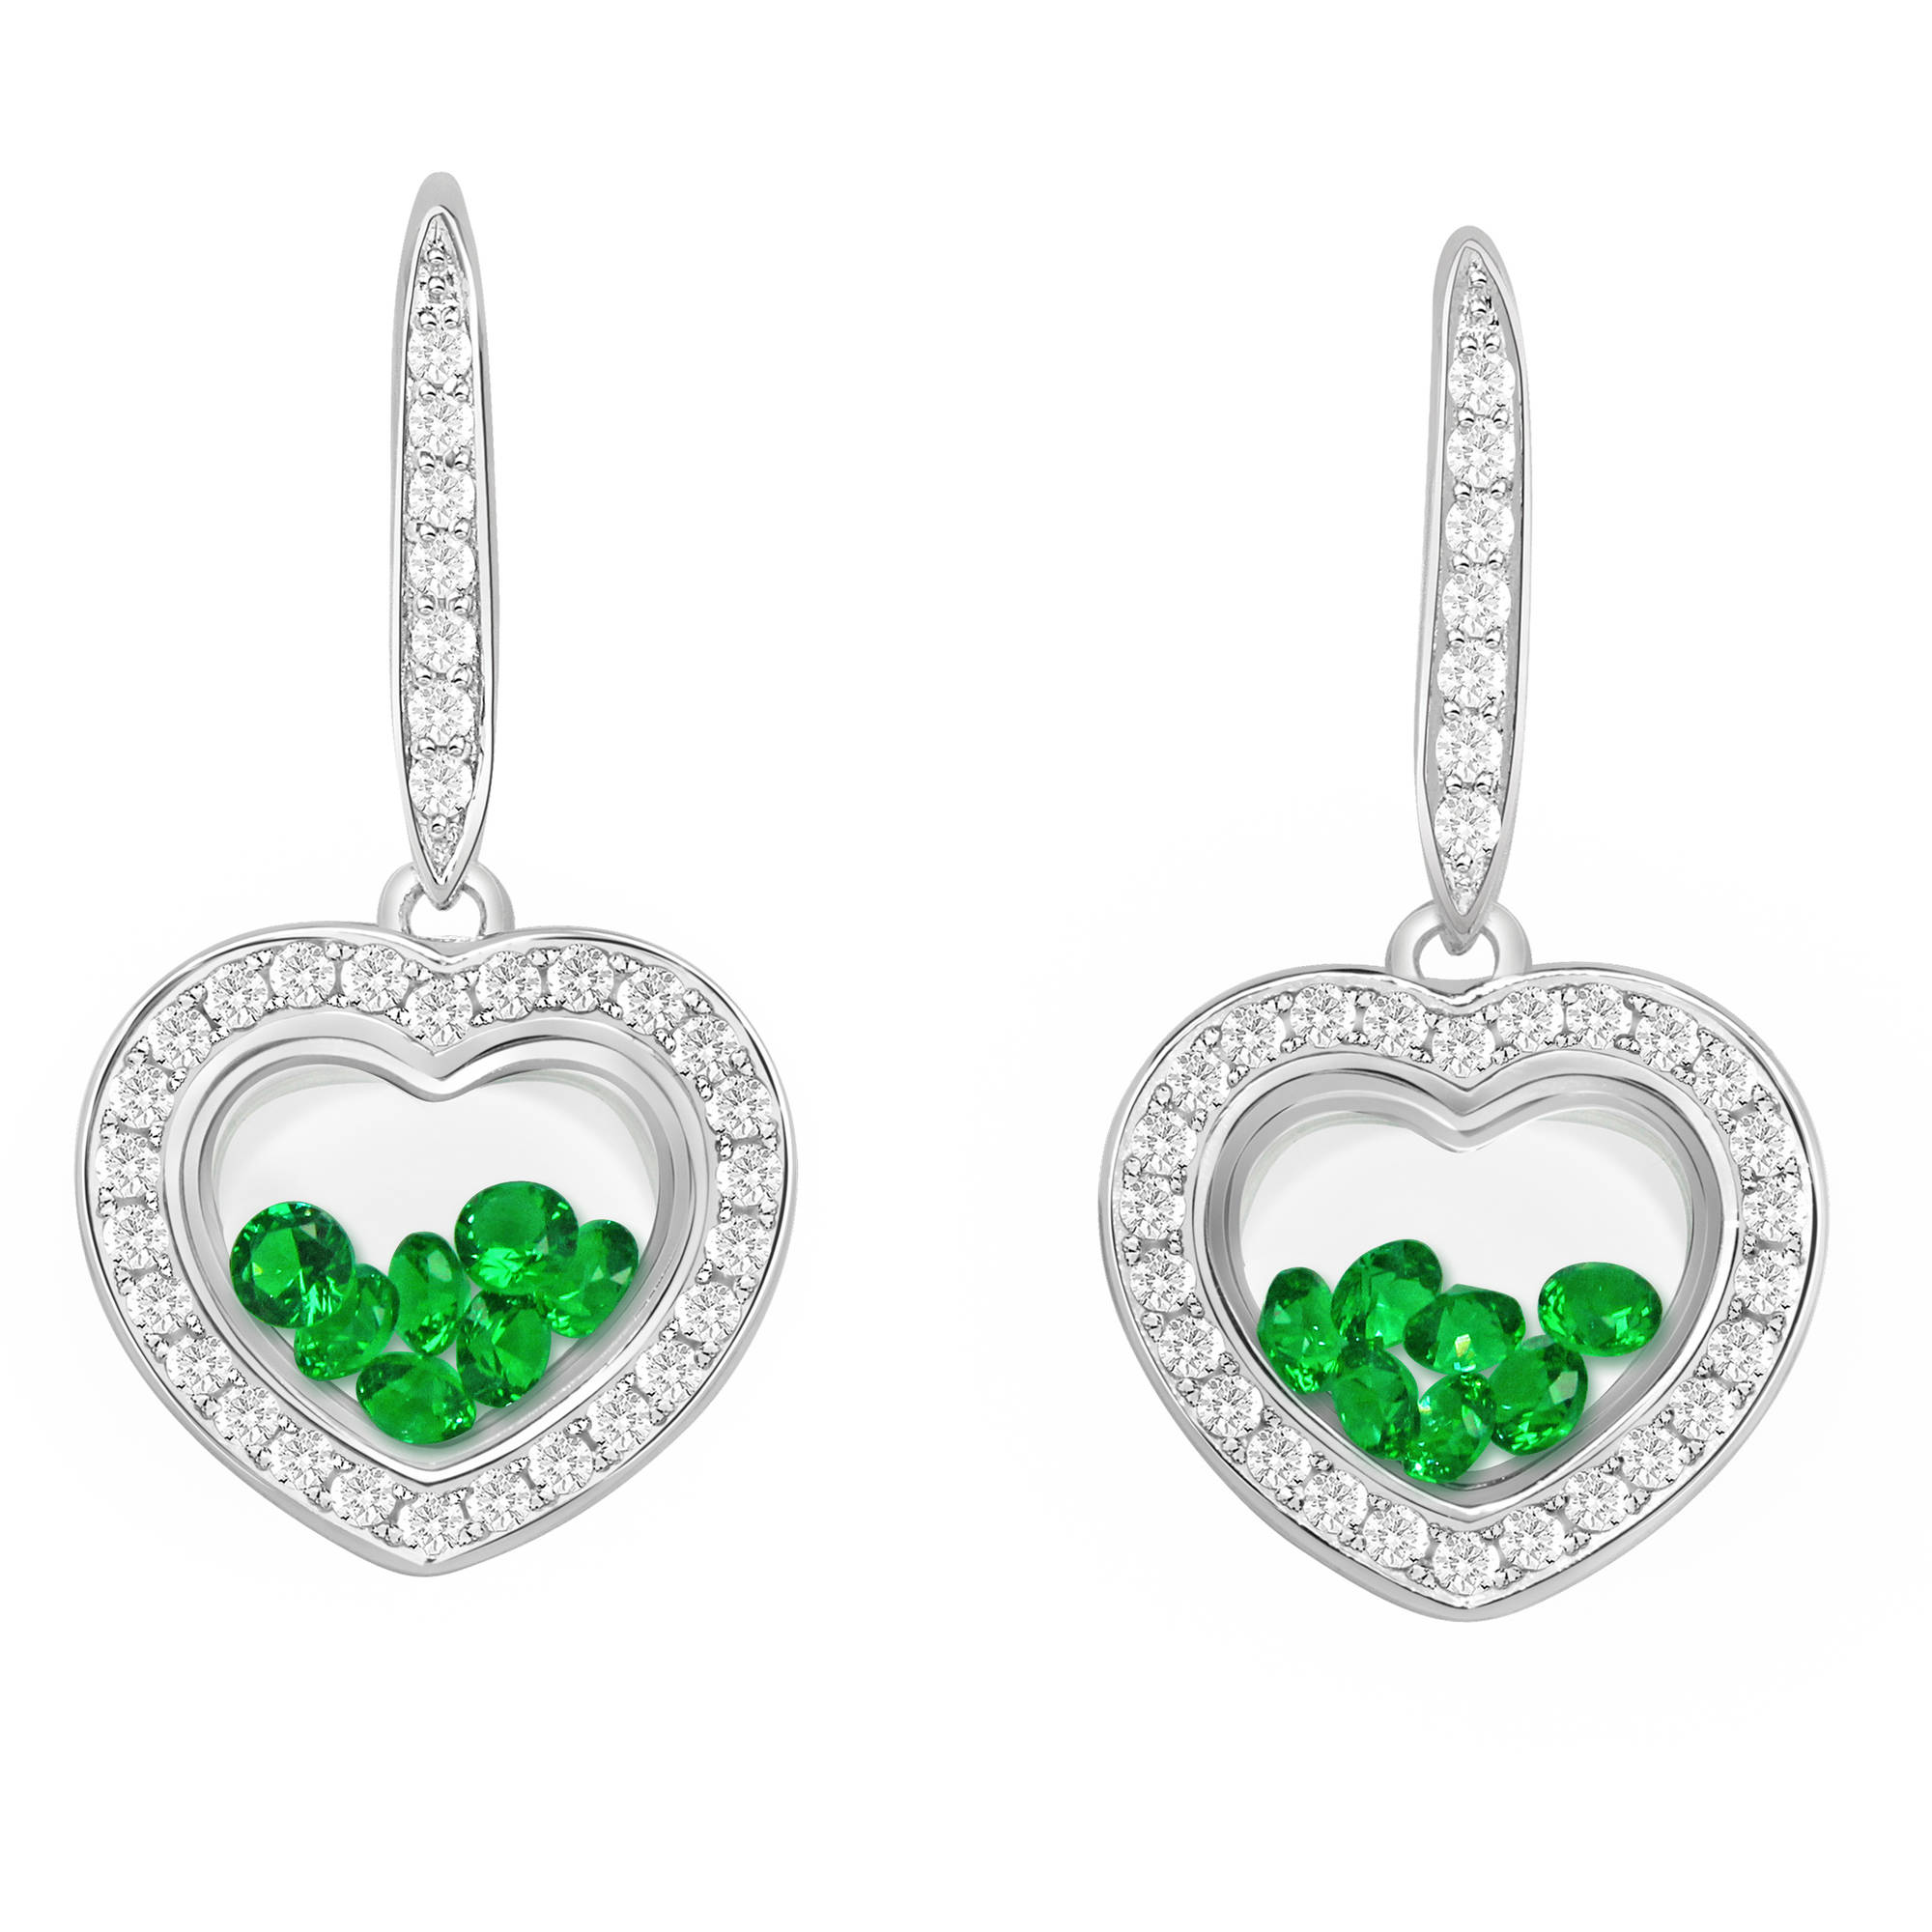 Chetan Collection Floating Green CZ Sterling Silver Designer Heart-Shape Earrings